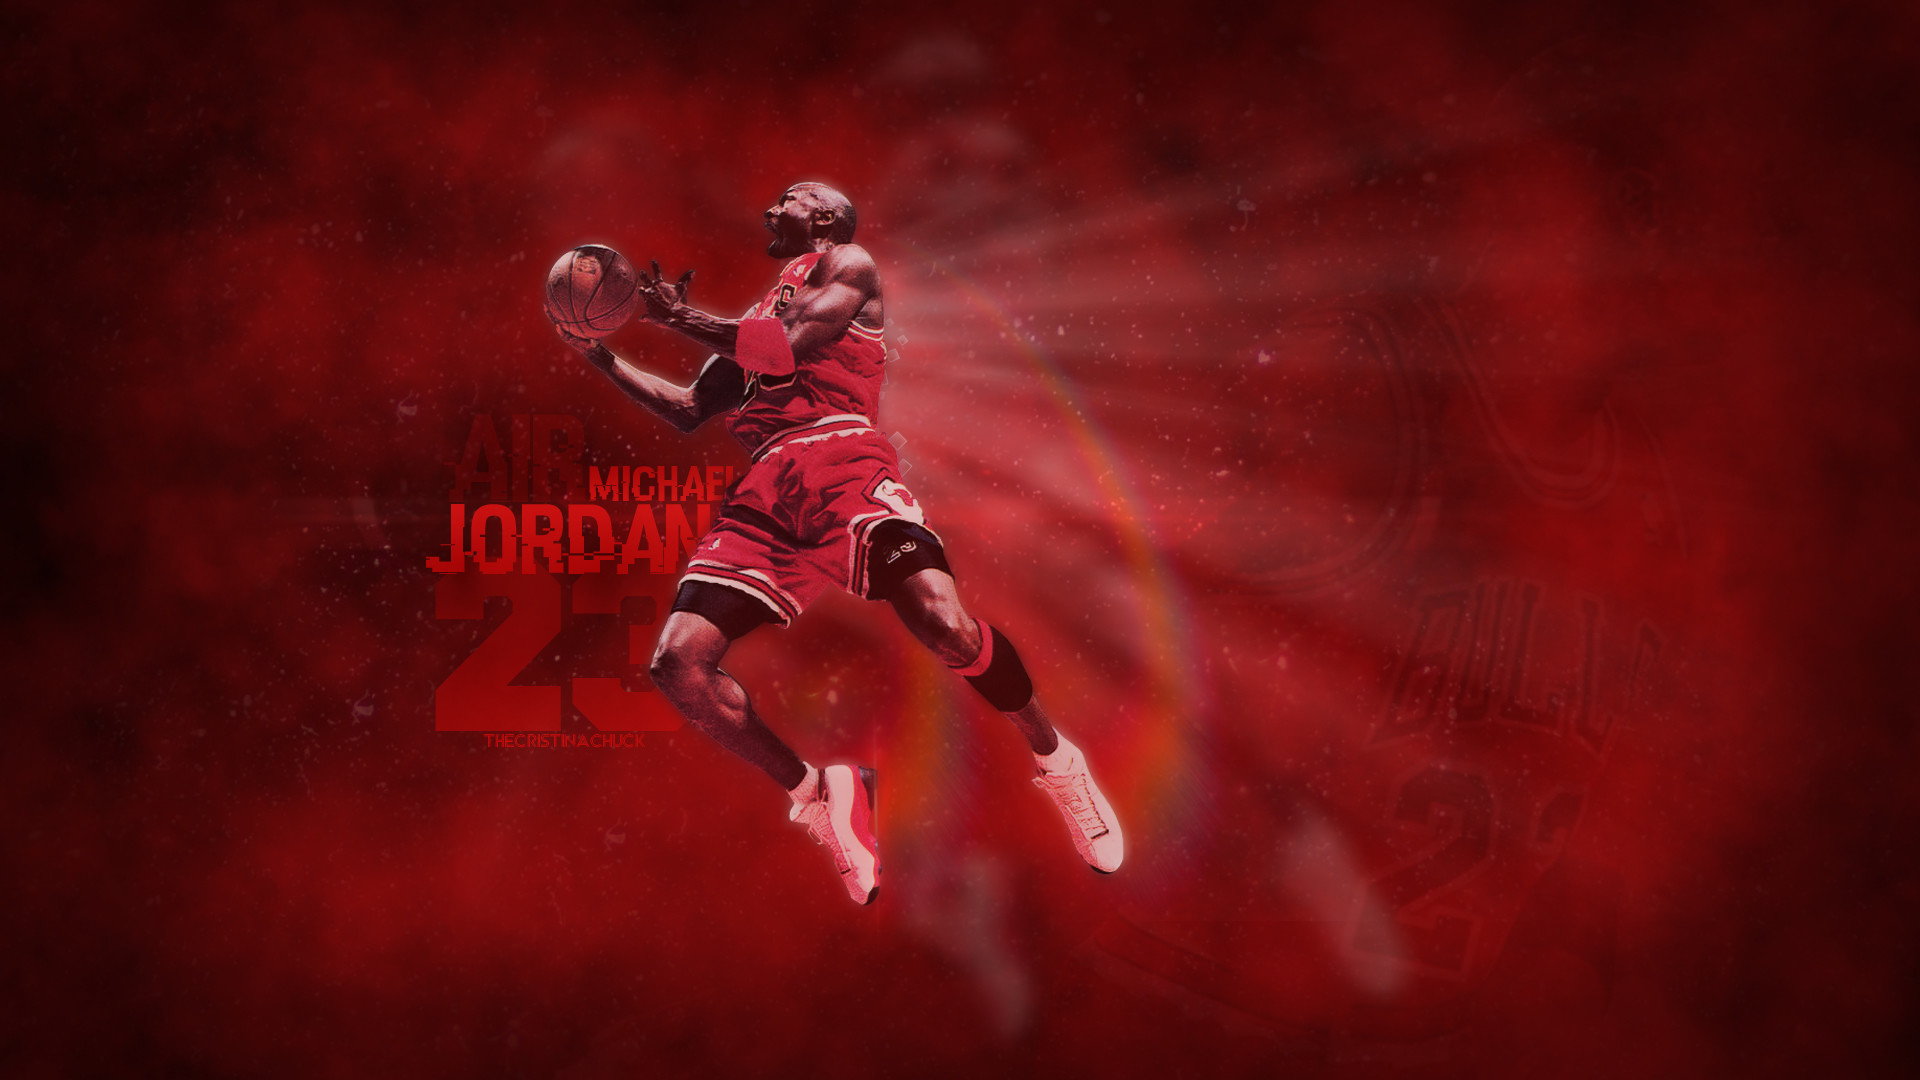 Res: 1920x1080, Jordan Wallpapers HD download Wallpapers Backgrounds Images